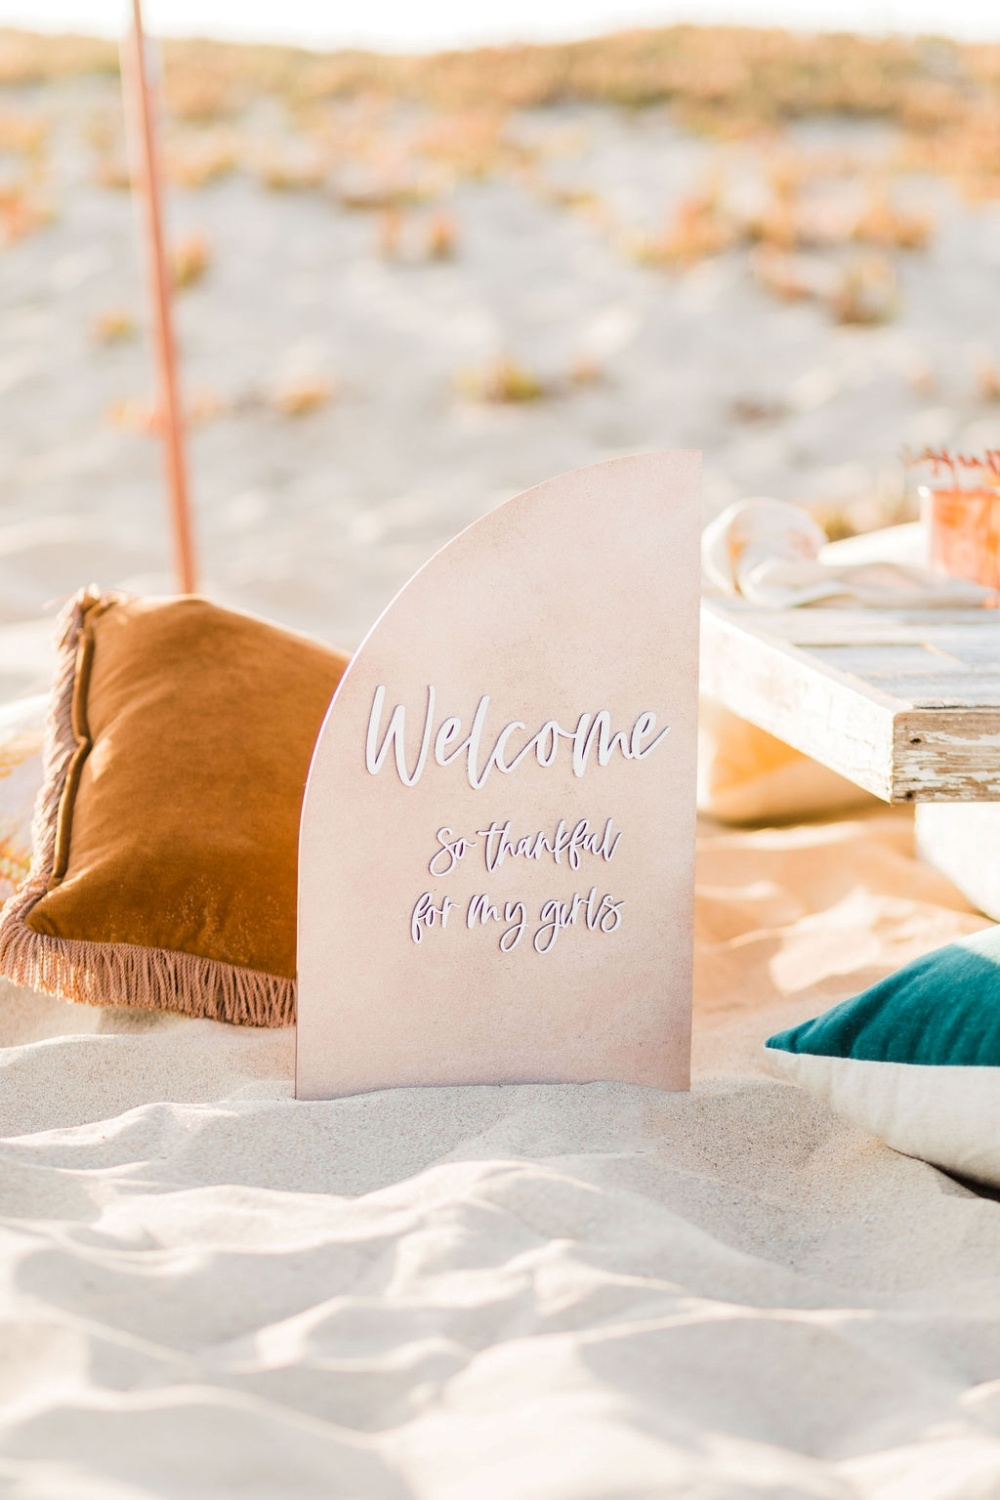 Friendsgiving party welcome sign